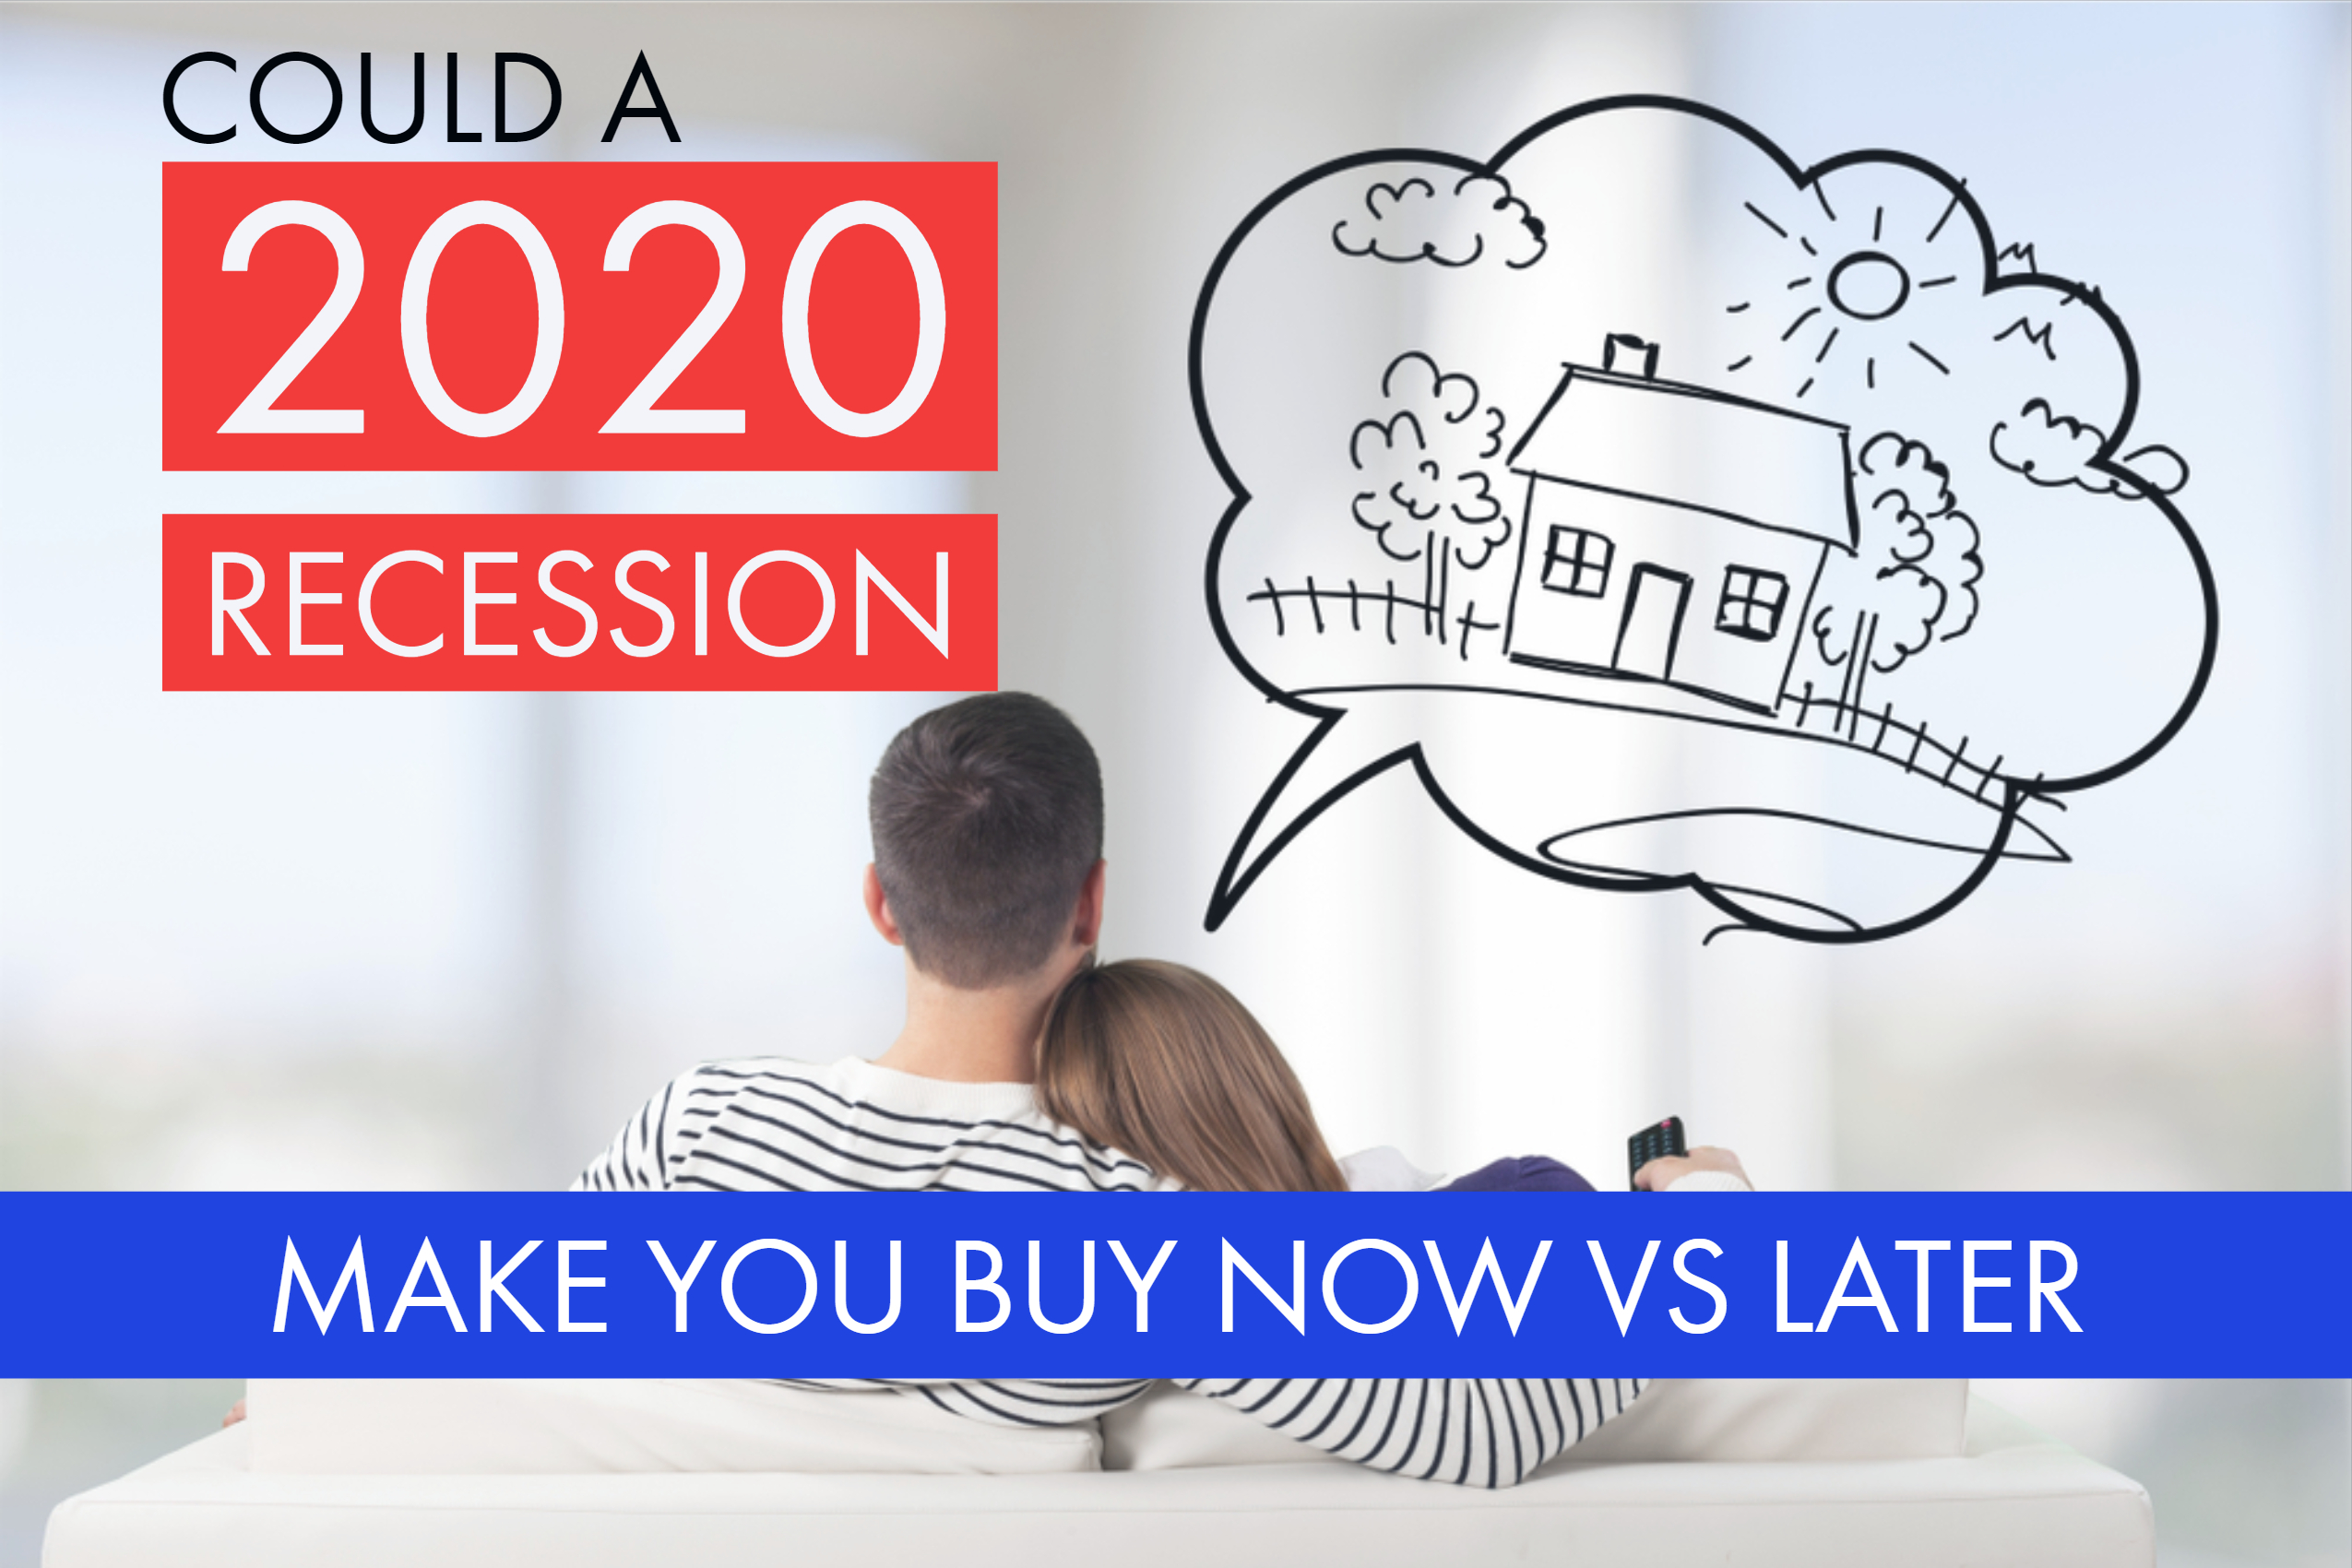 Best Real Estate Company To Work For 2020 Could a 2020 recession make you buy now versus later best real